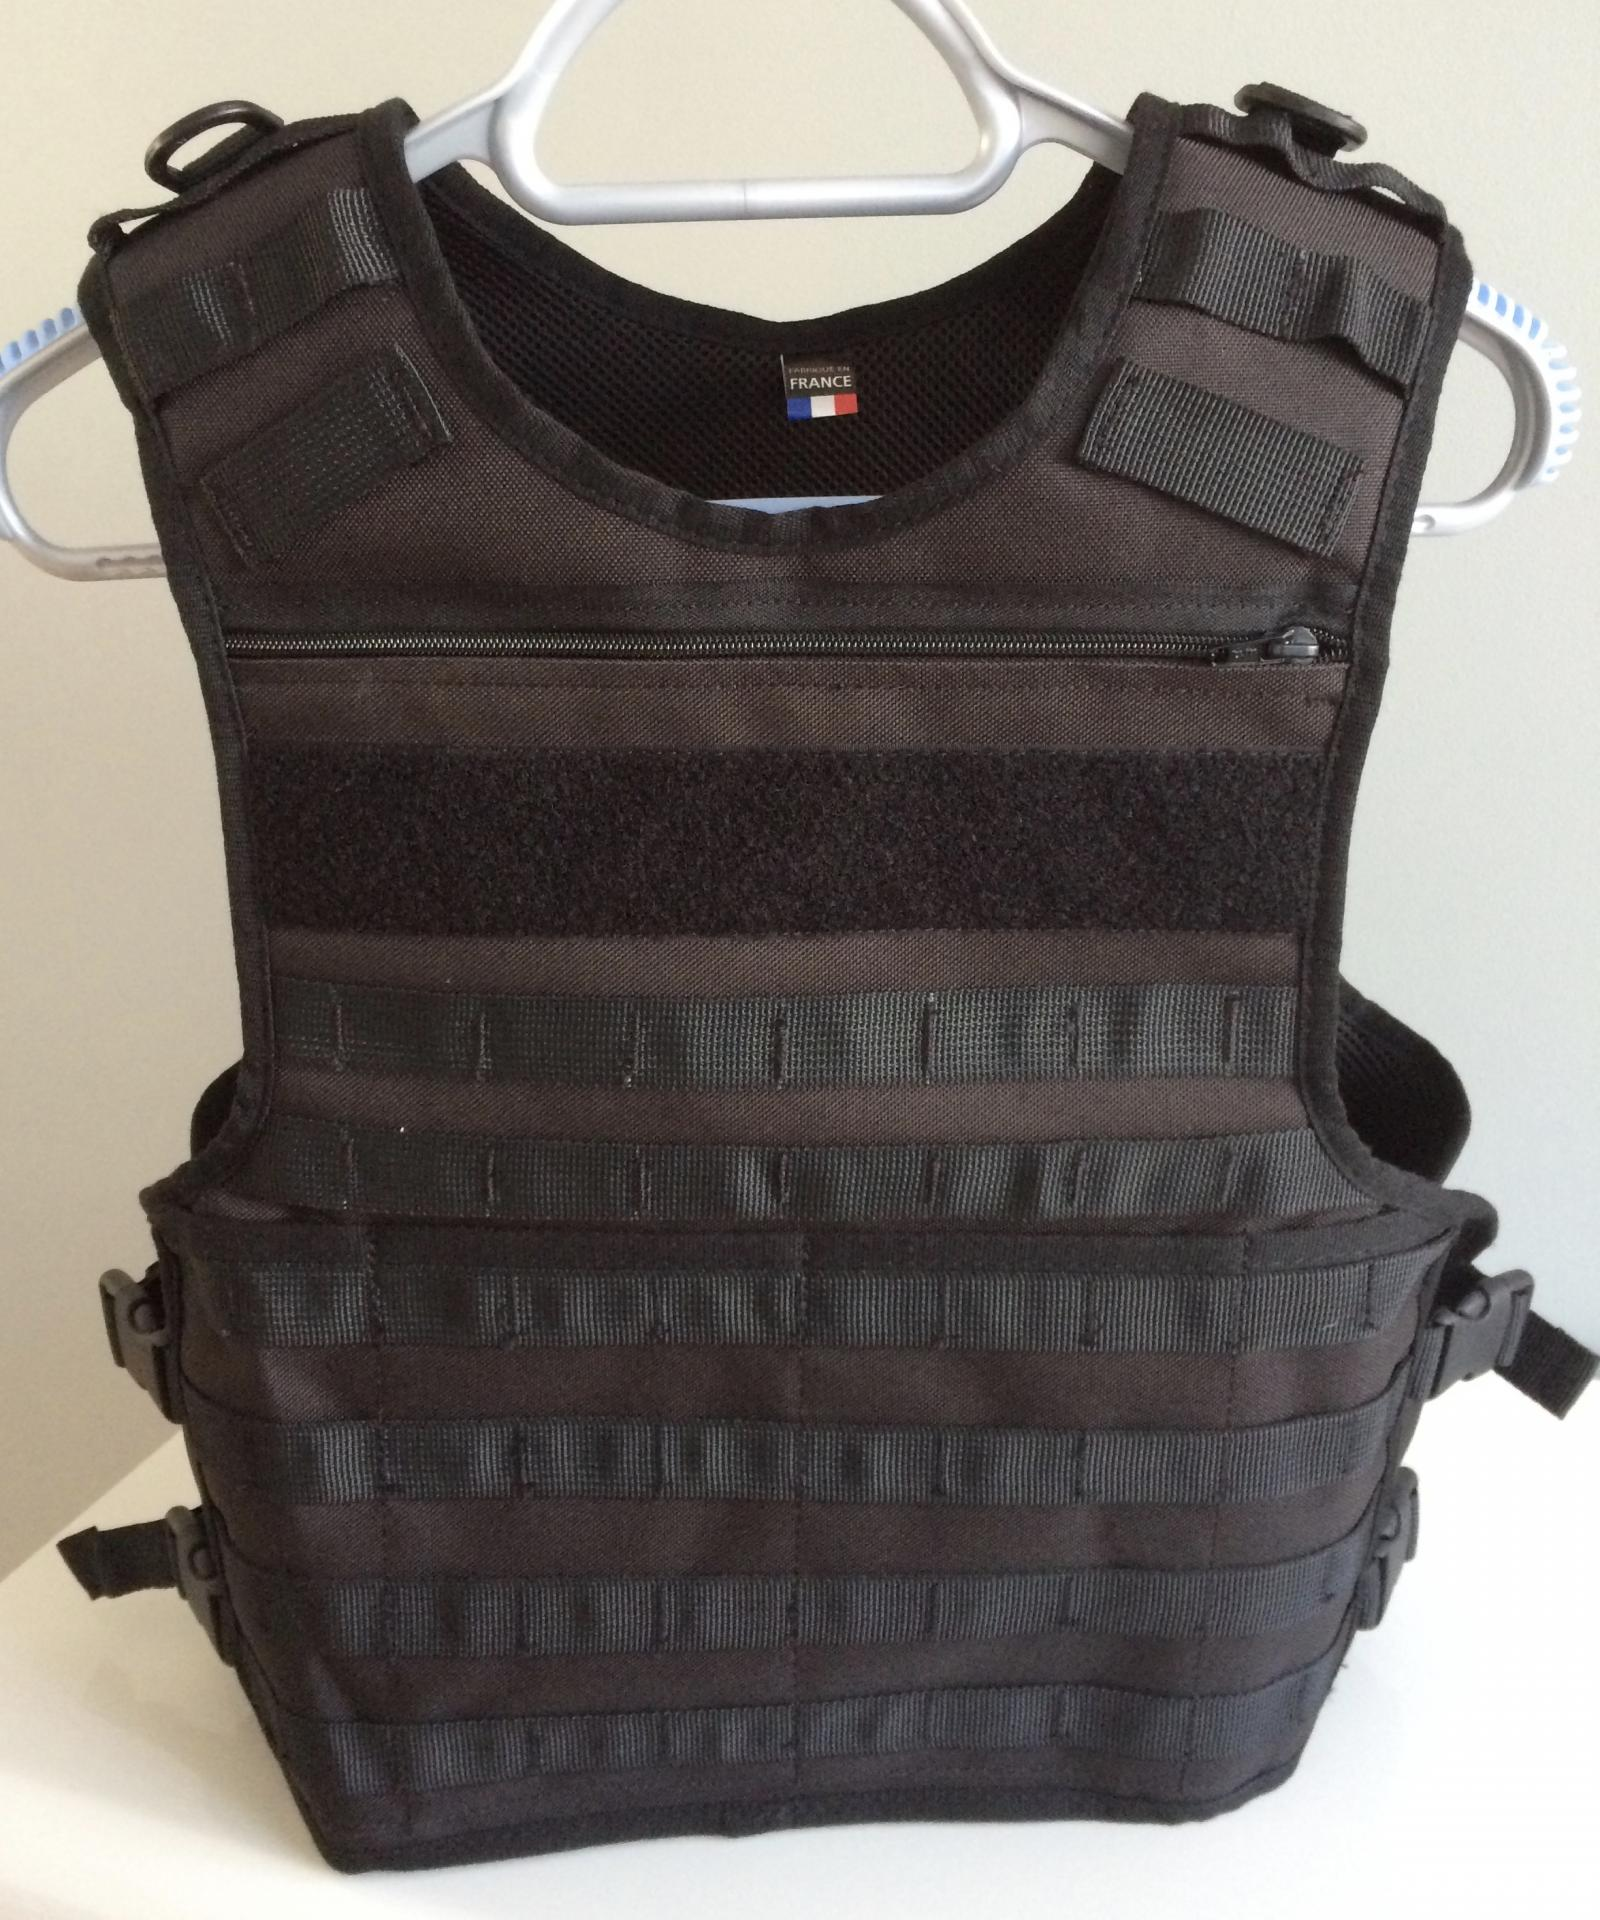 Photos housse gilet pare balle tactique smartchest par for Housse gilet pare balle gk